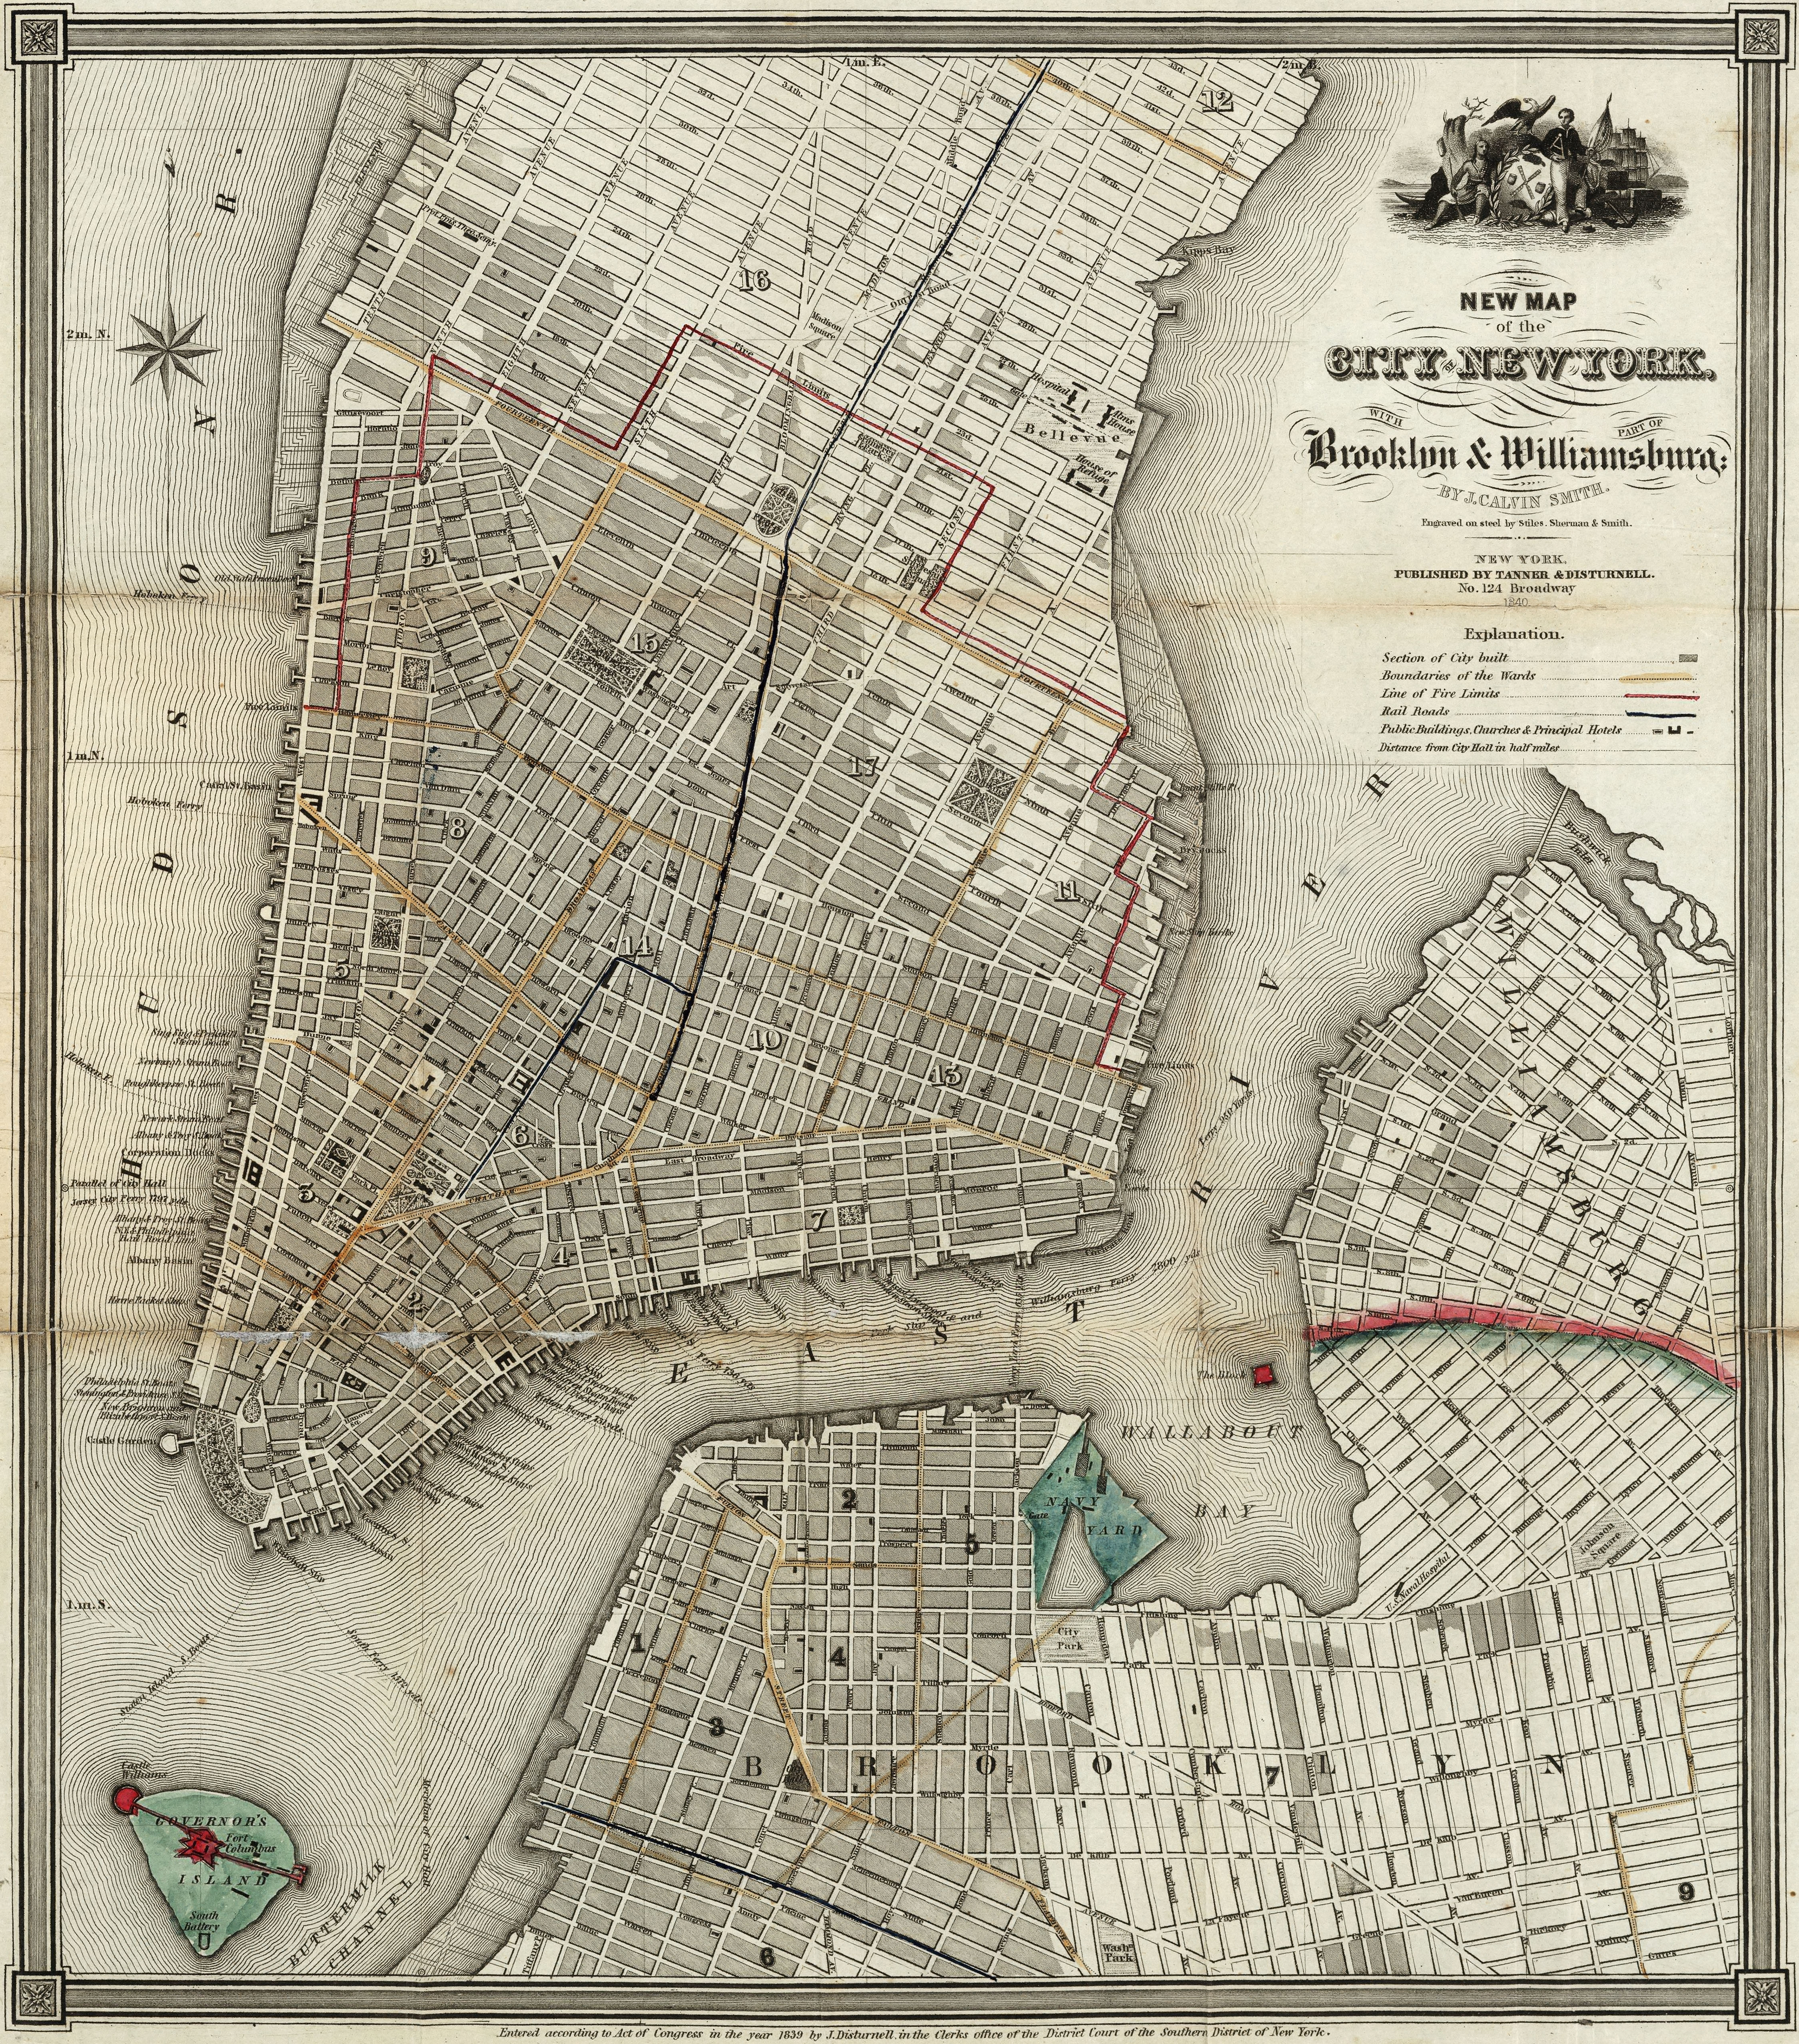 Free Downloads Of Large Old New York City Maps Minimalgoods - Old map shop